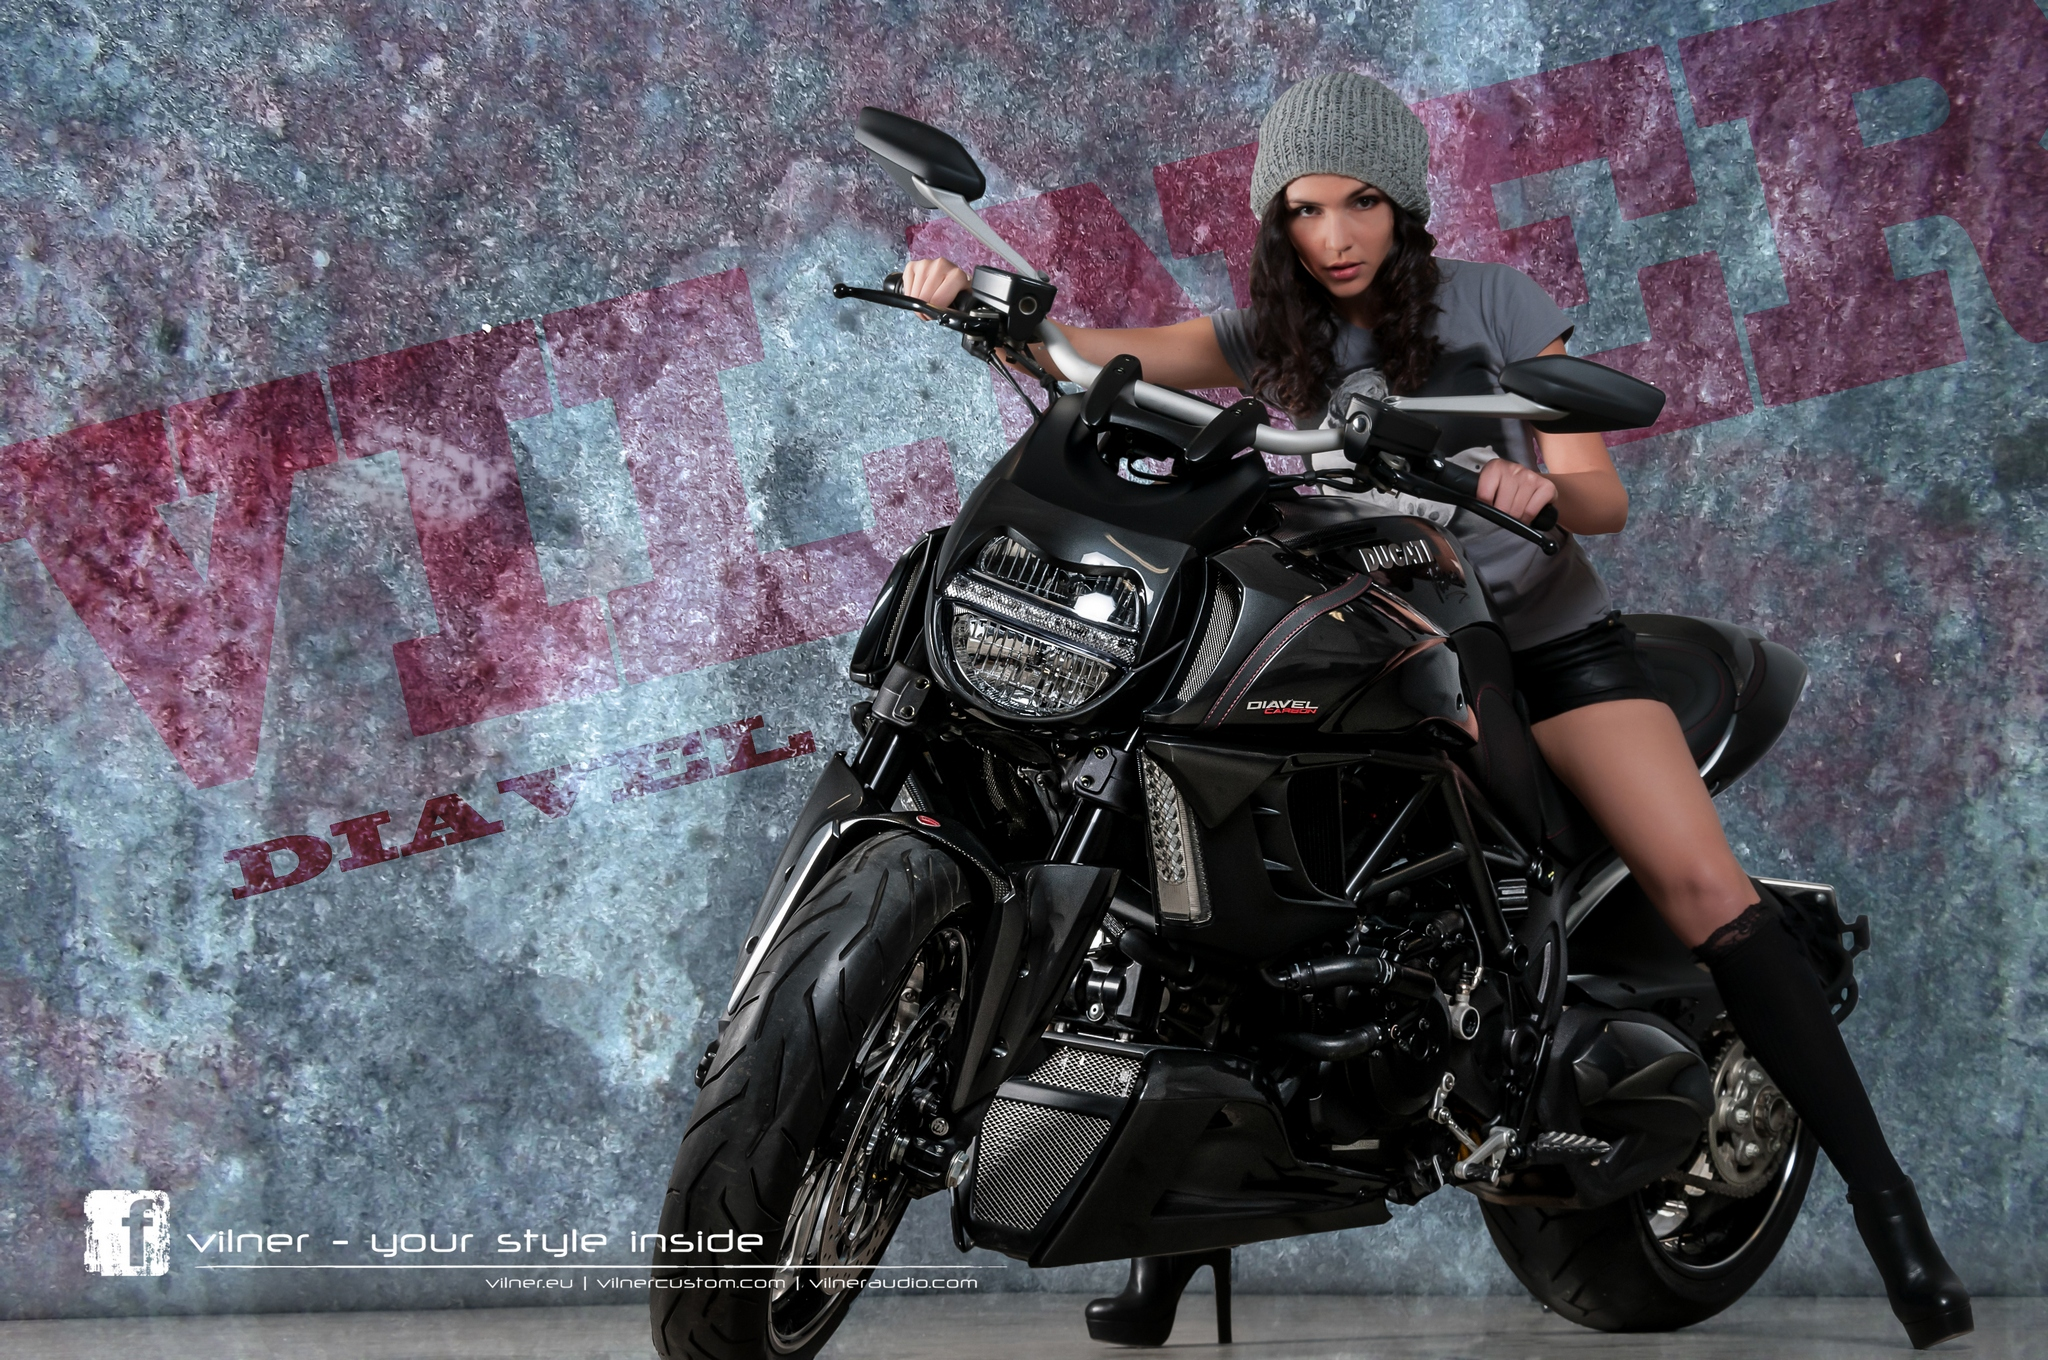 Leather Trim Ducati Diavel From Vilner With Love